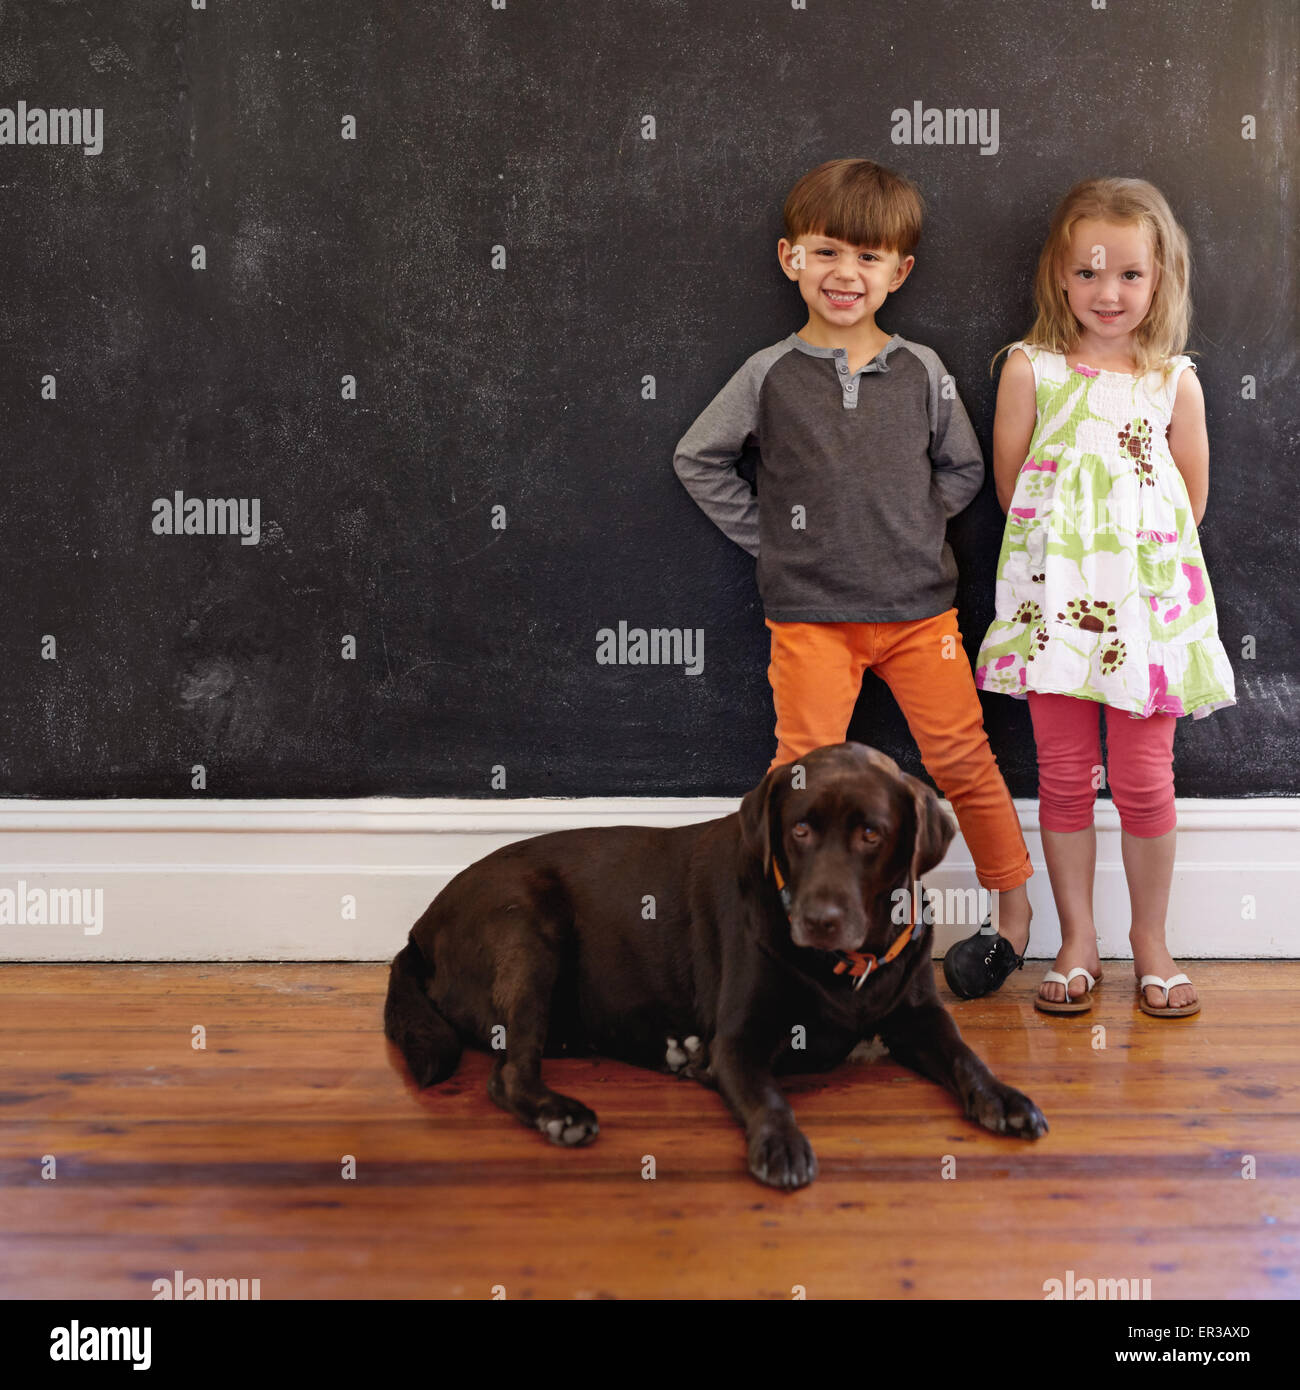 Full length shot of smiling little boy and girl standing next to dog at home. Labrador retriever sitting on floor - Stock Image